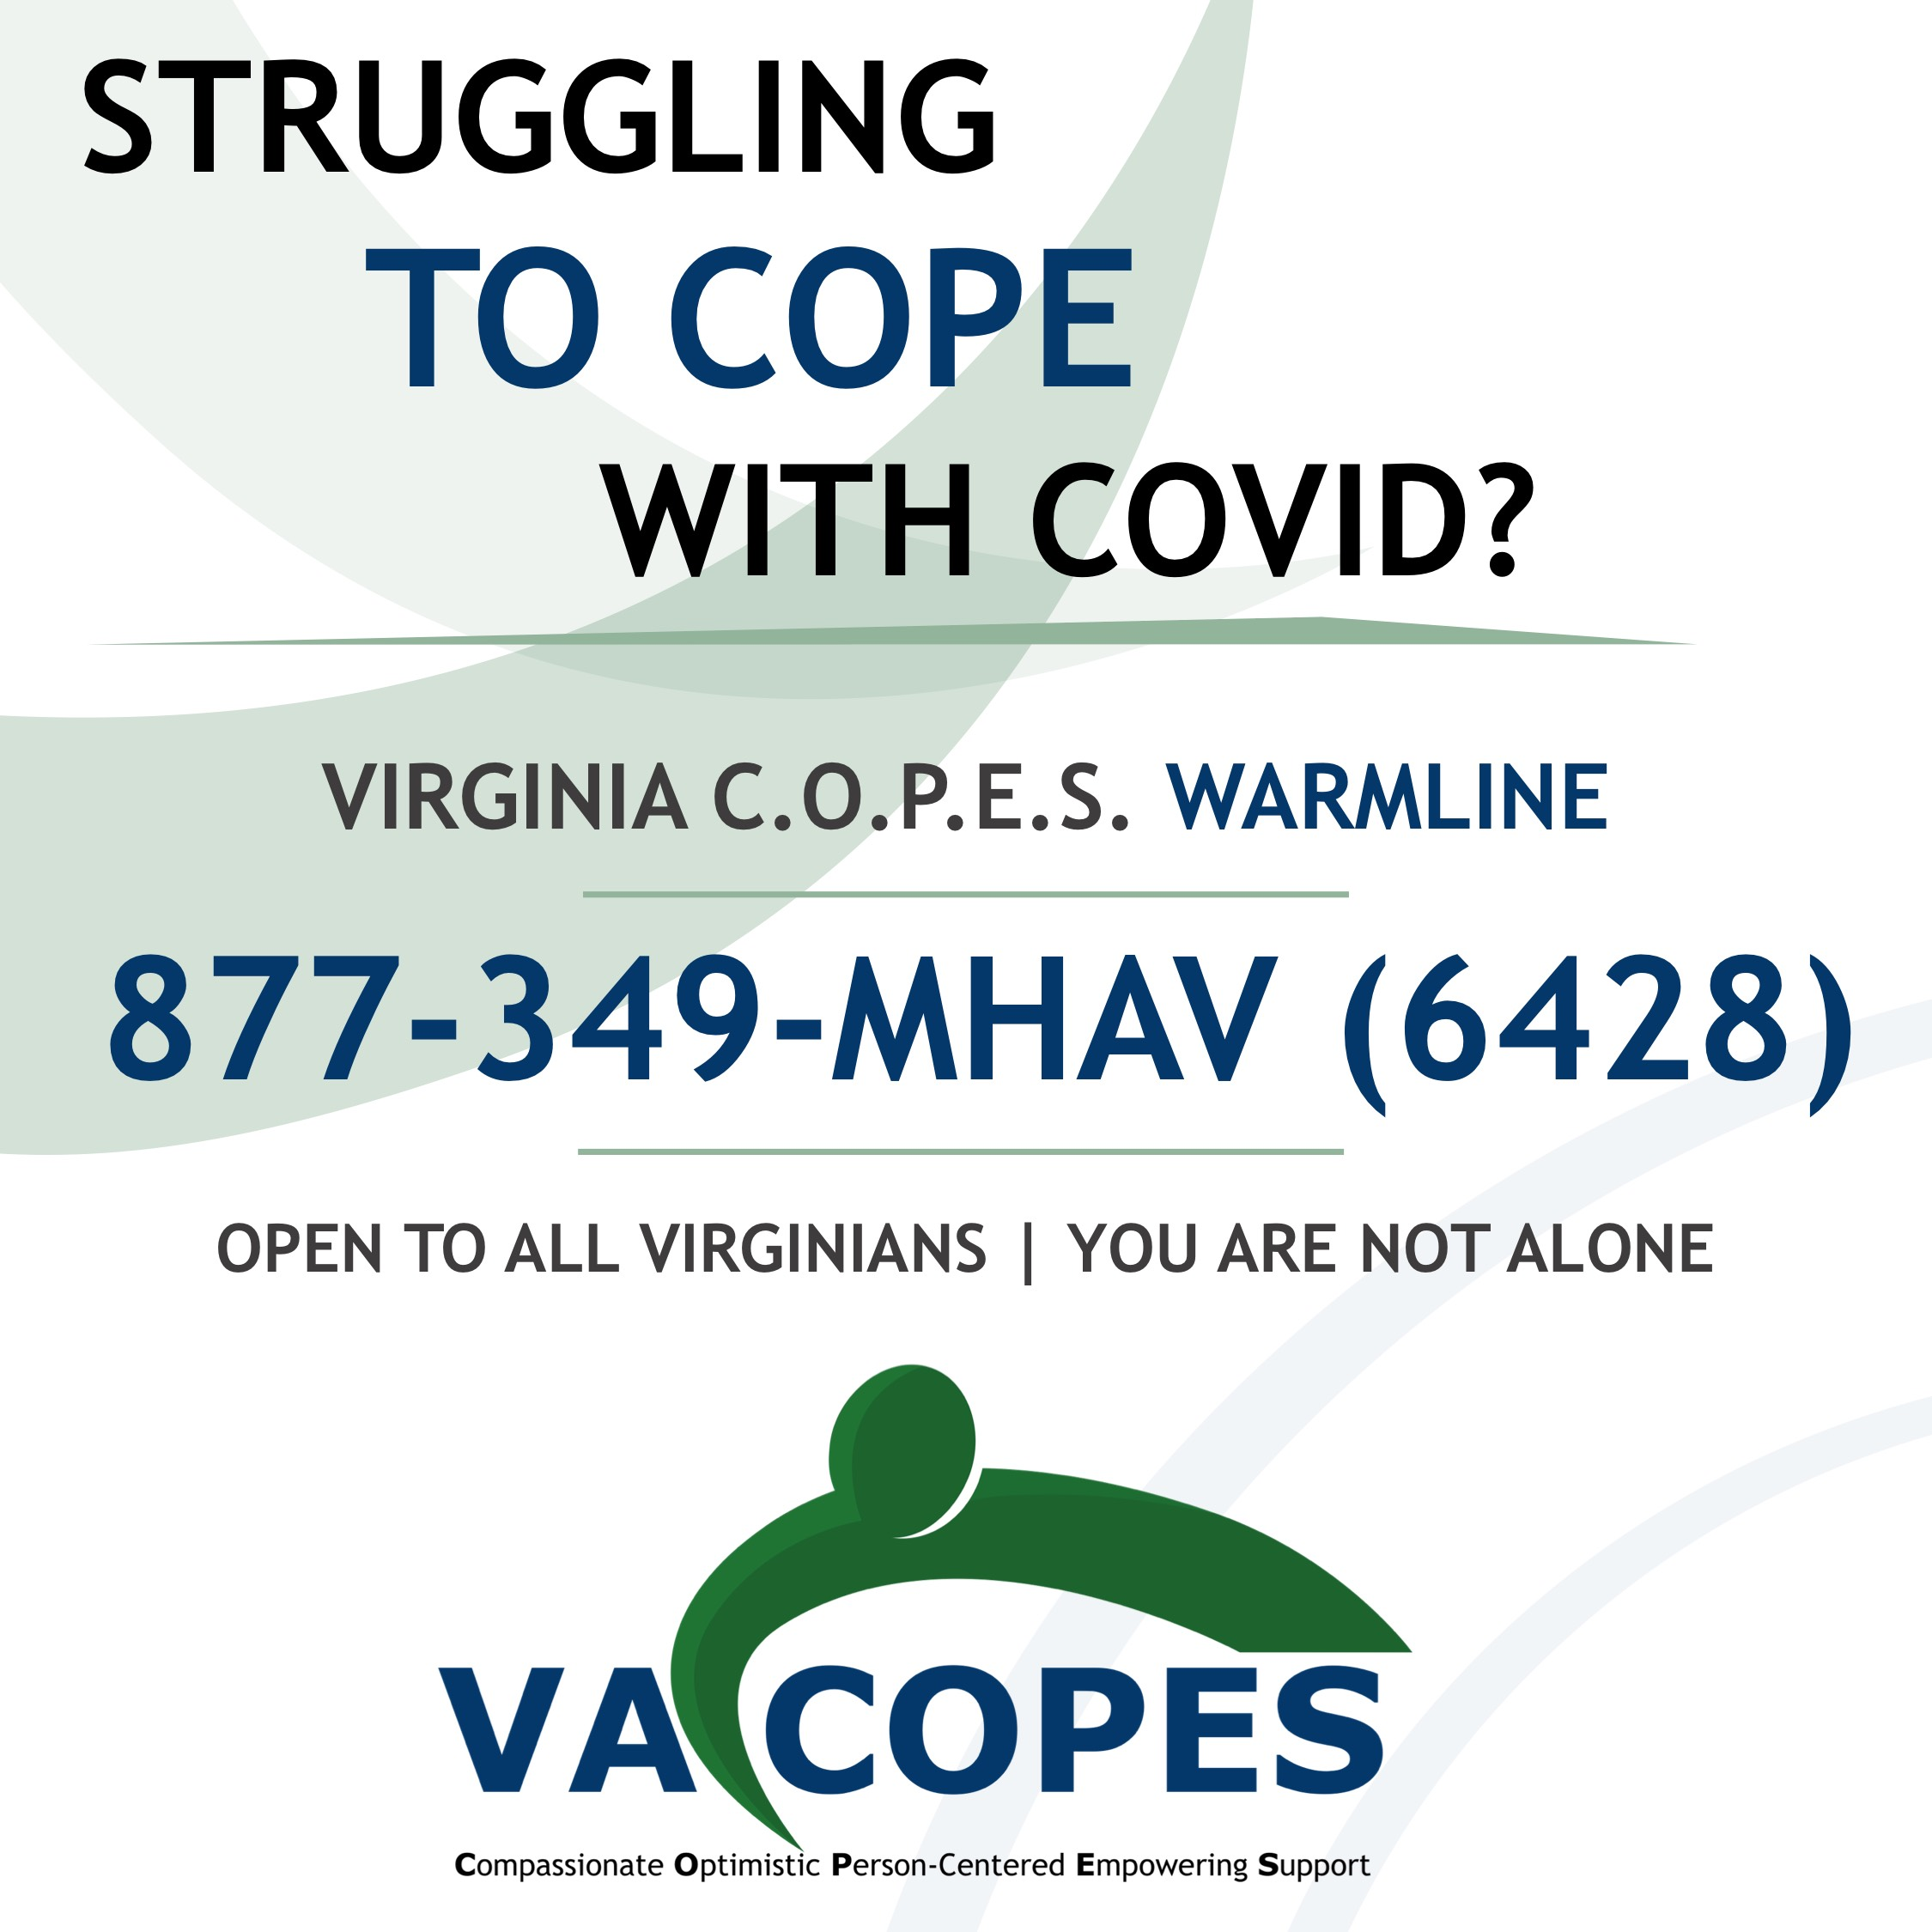 Struggling to Cope with COVID? Call 877-349-6428 for assistance